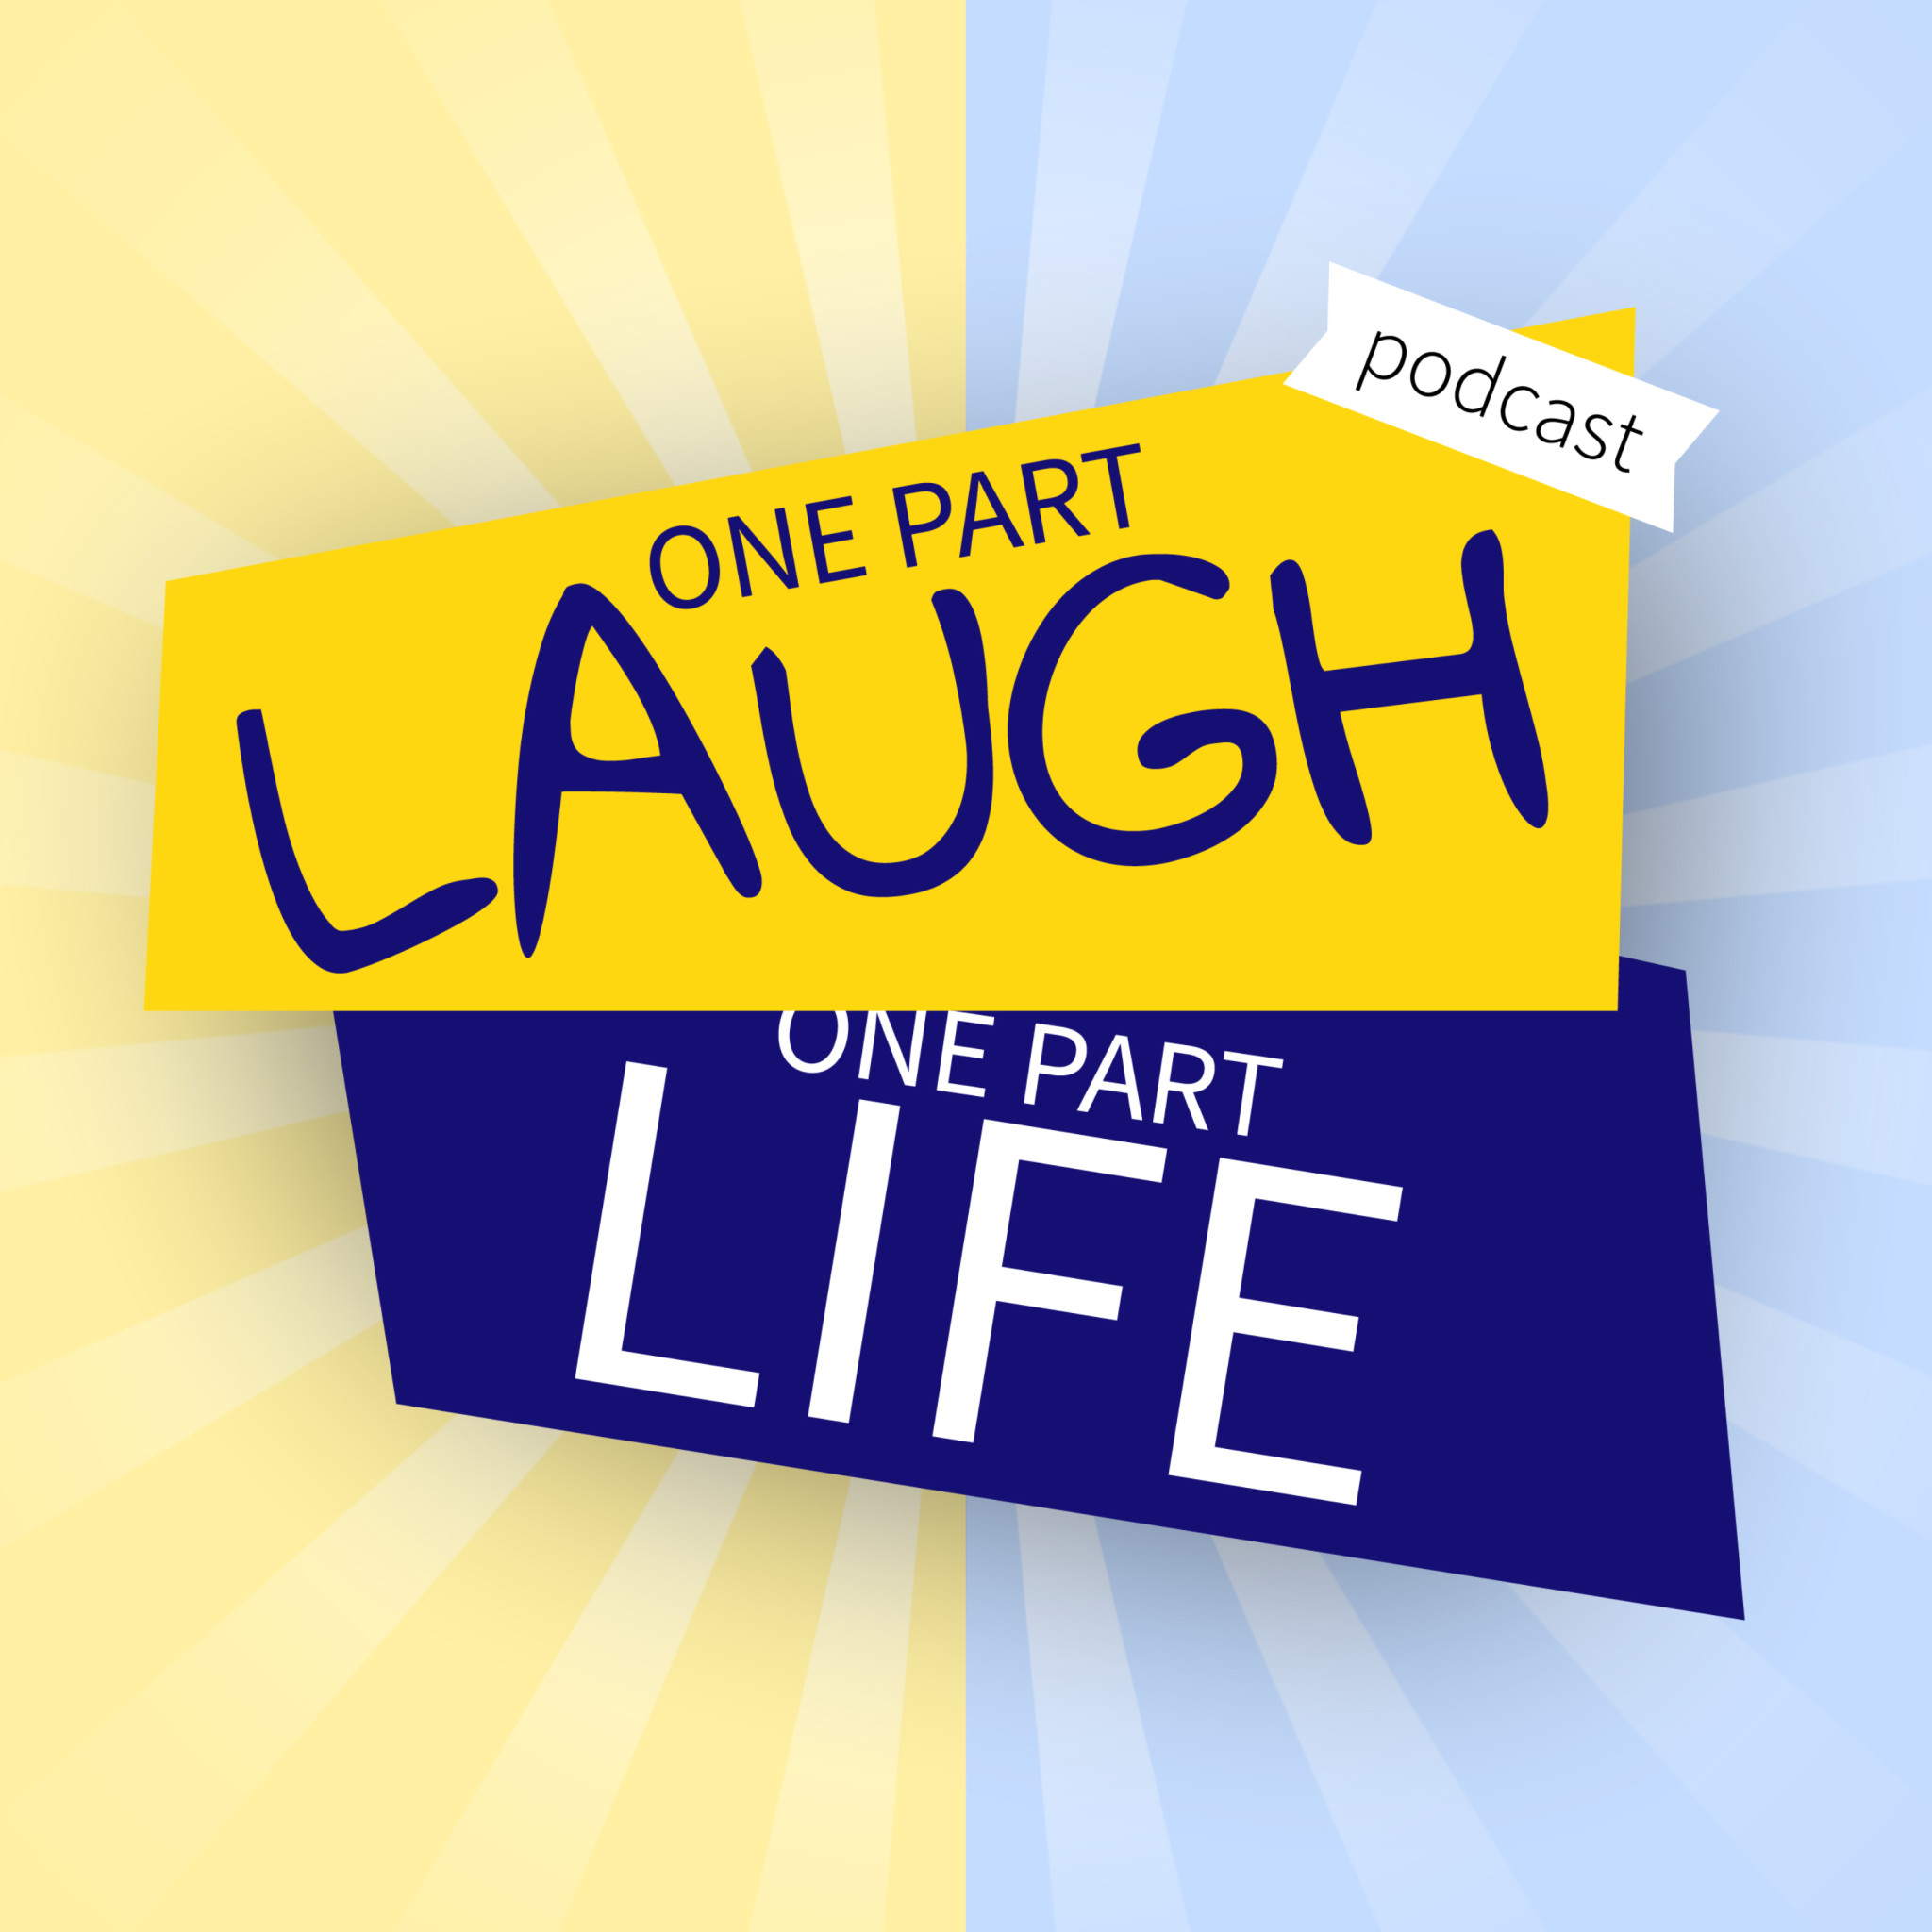 One Part Podcast Logo